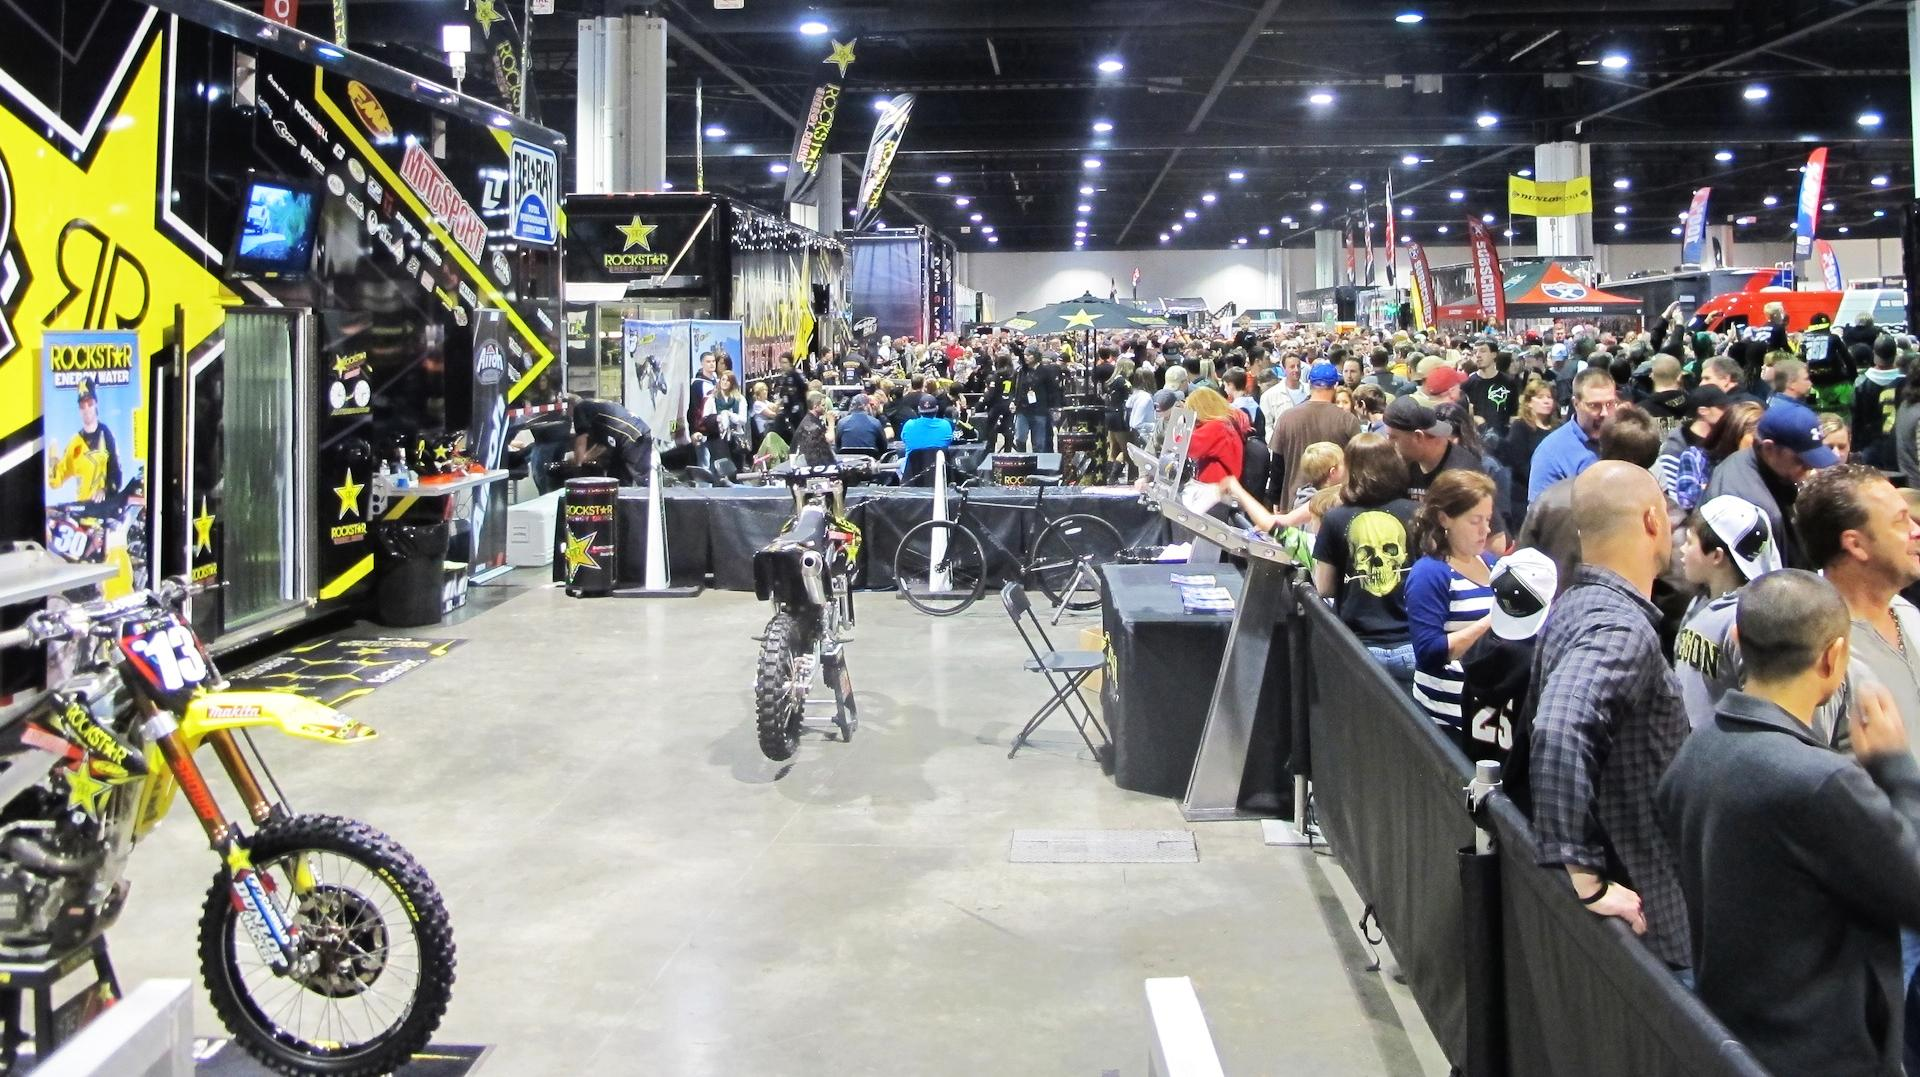 Rockstar Energy Racing Pits